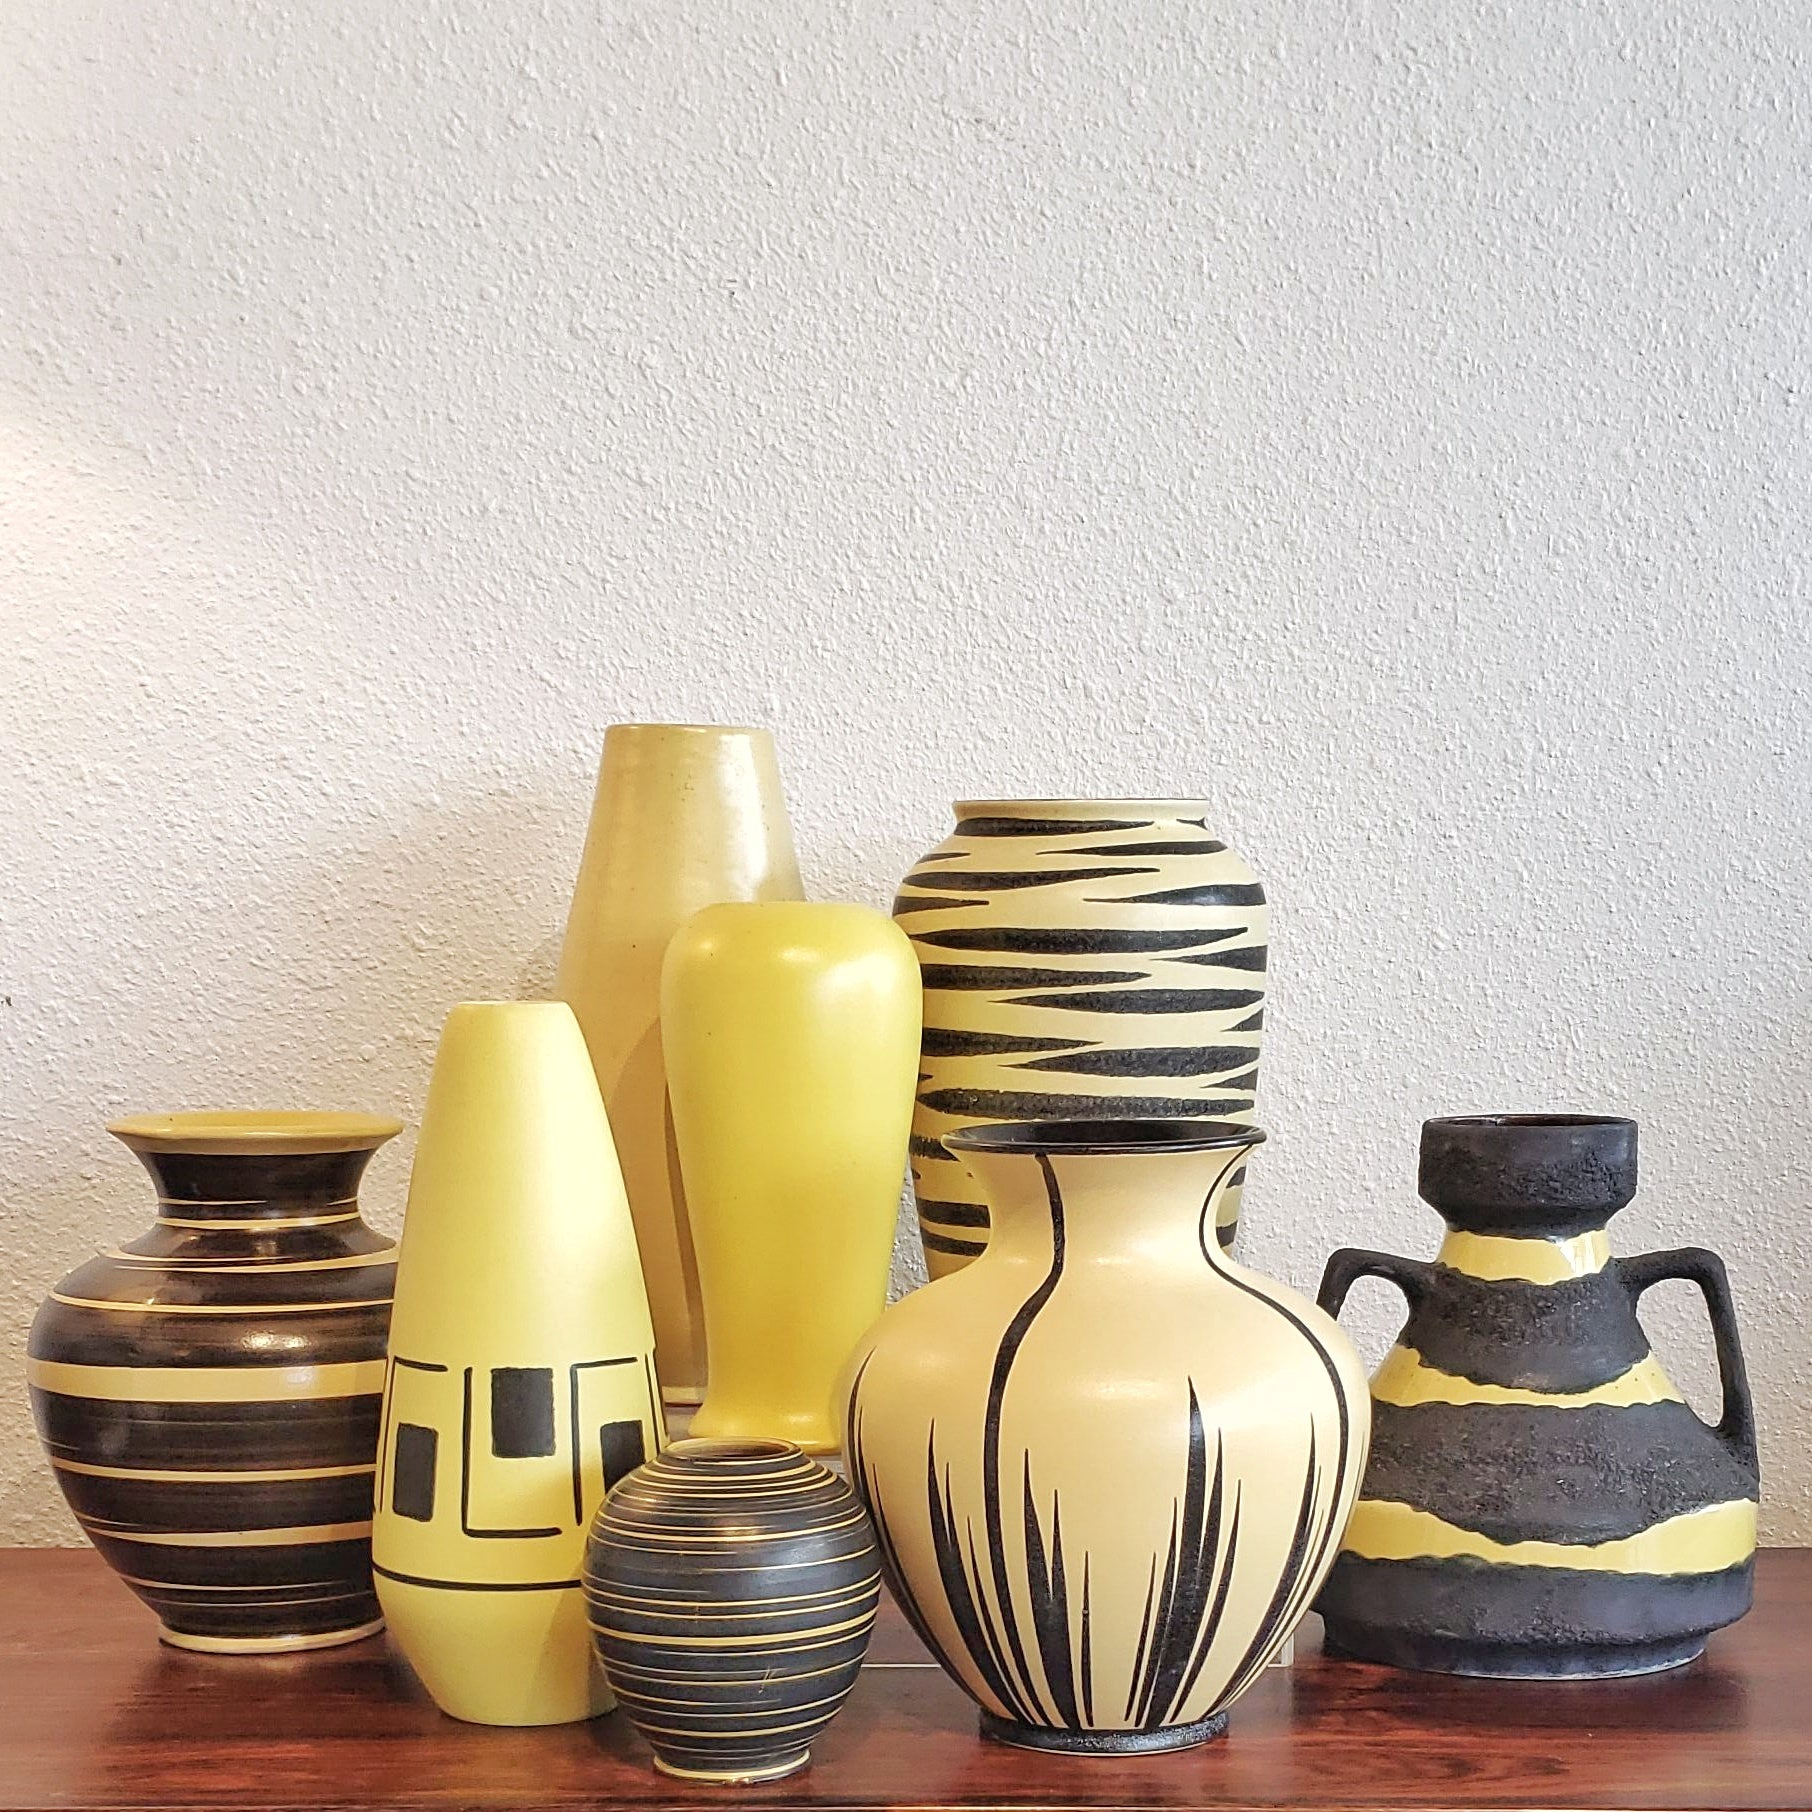 ELMA KERAMIK YELLOW AND BLACK BOUQUET VASE Nr. 103/21